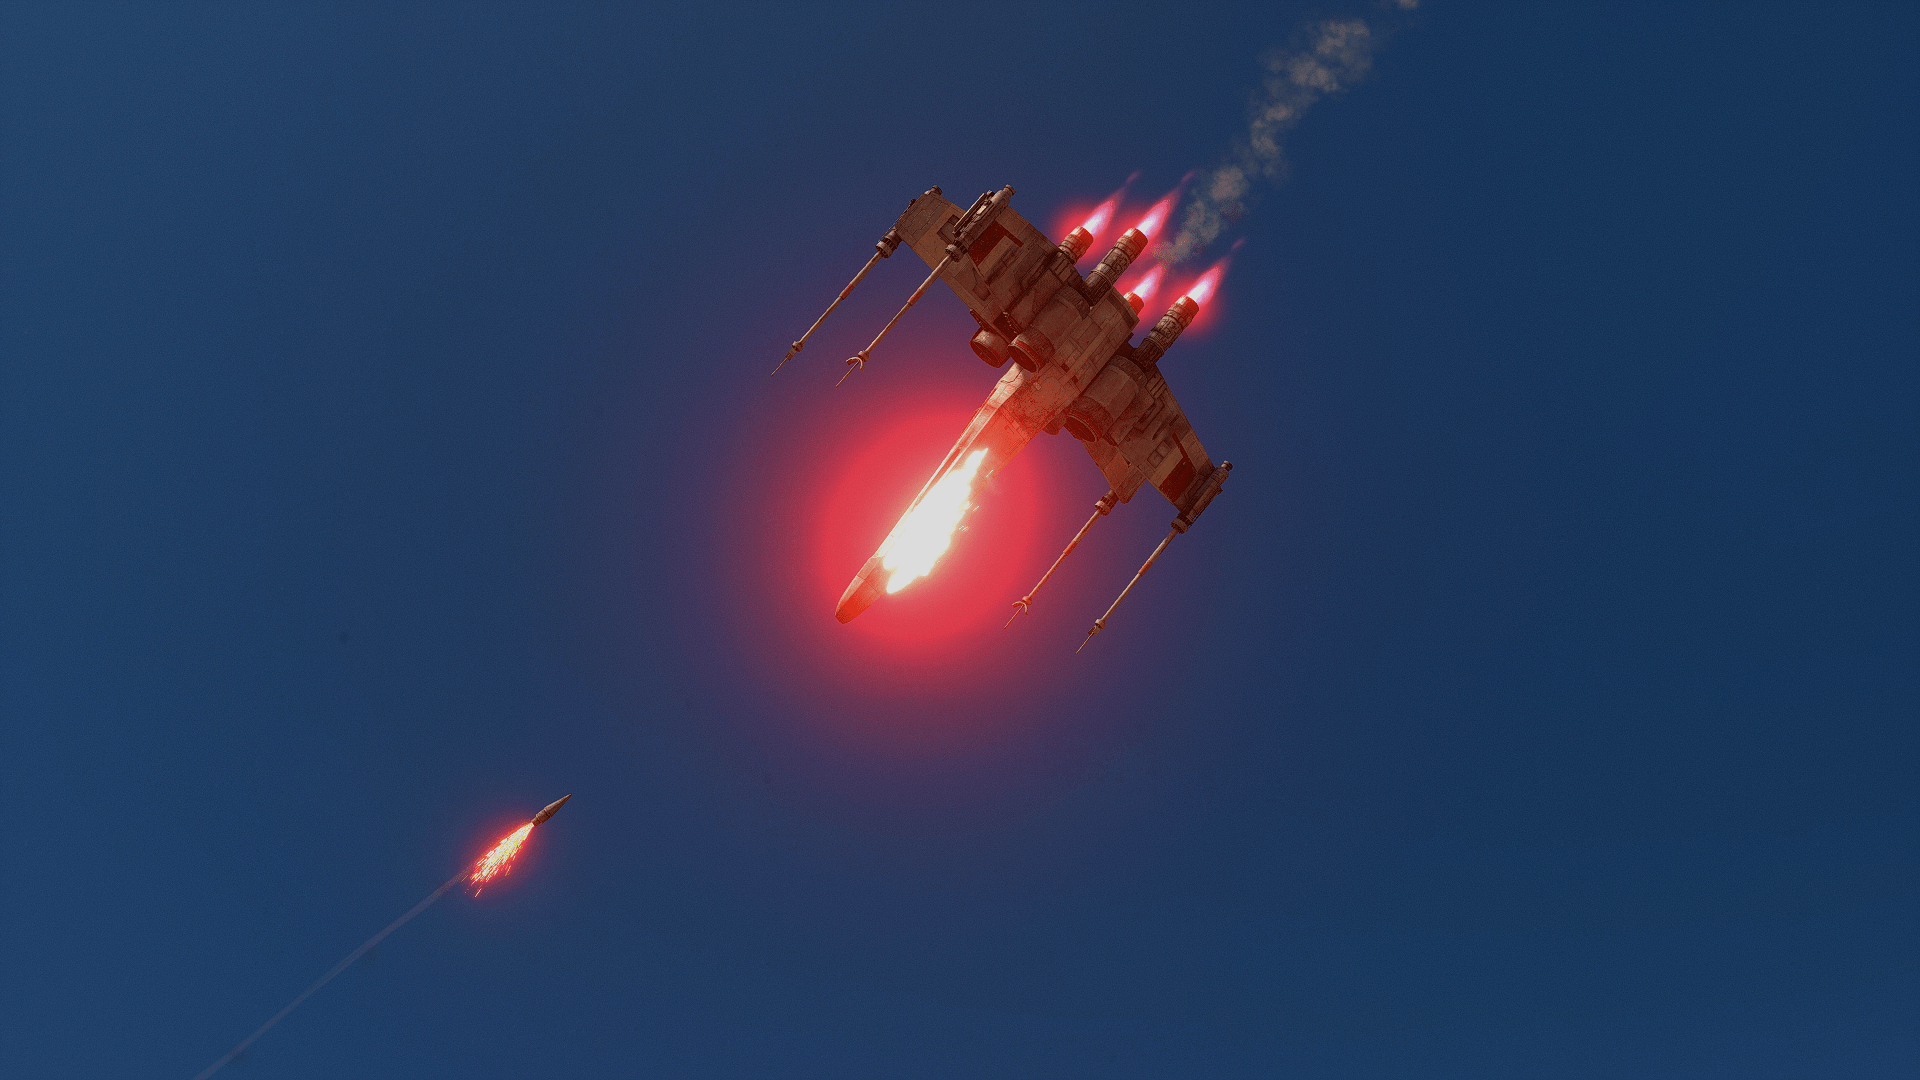 X Wing Fighter Iphone Wallpaper X Wing About To Explode Hd Wallpaper Background Image